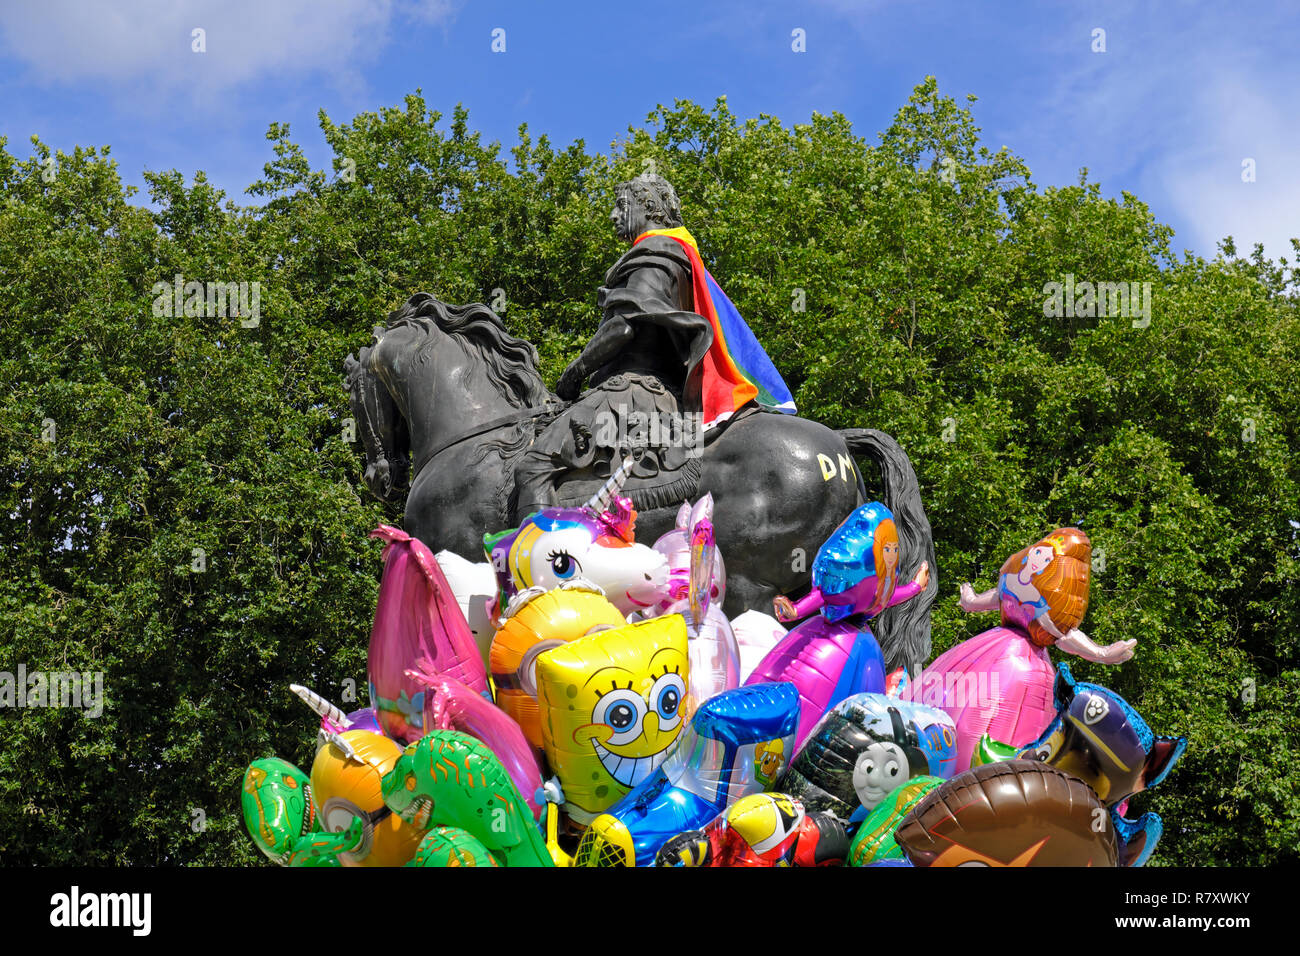 In Bristol, UK a balloon seller walks past a statue of William III which is wearing a Pride flag as a cloak during Bristol Pride 2017. - Stock Image